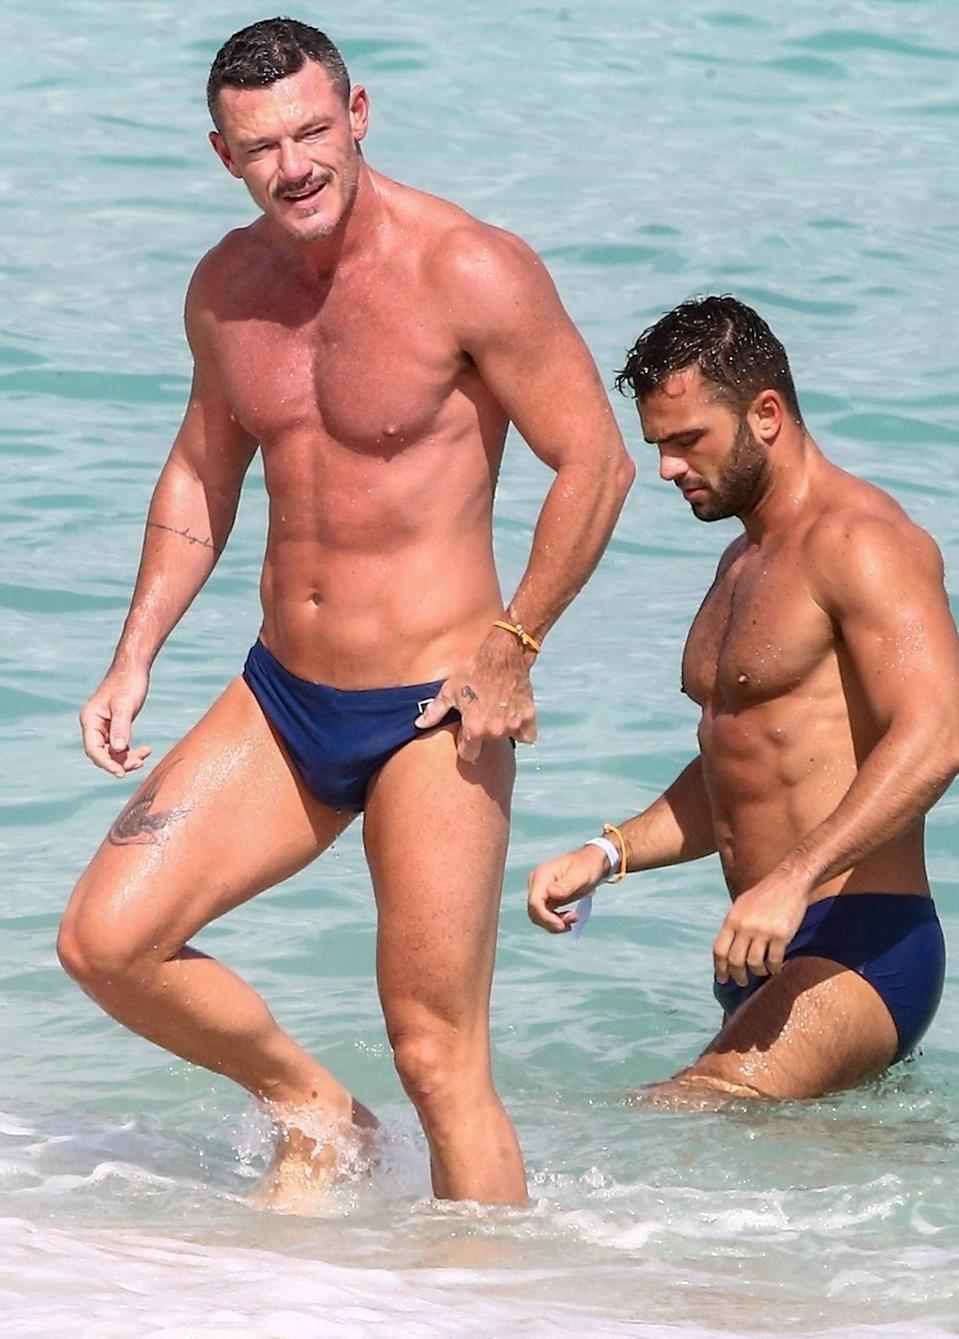 <p>Luke Evans enjoys a beach day with a friend on Tuesday in Miami.</p>